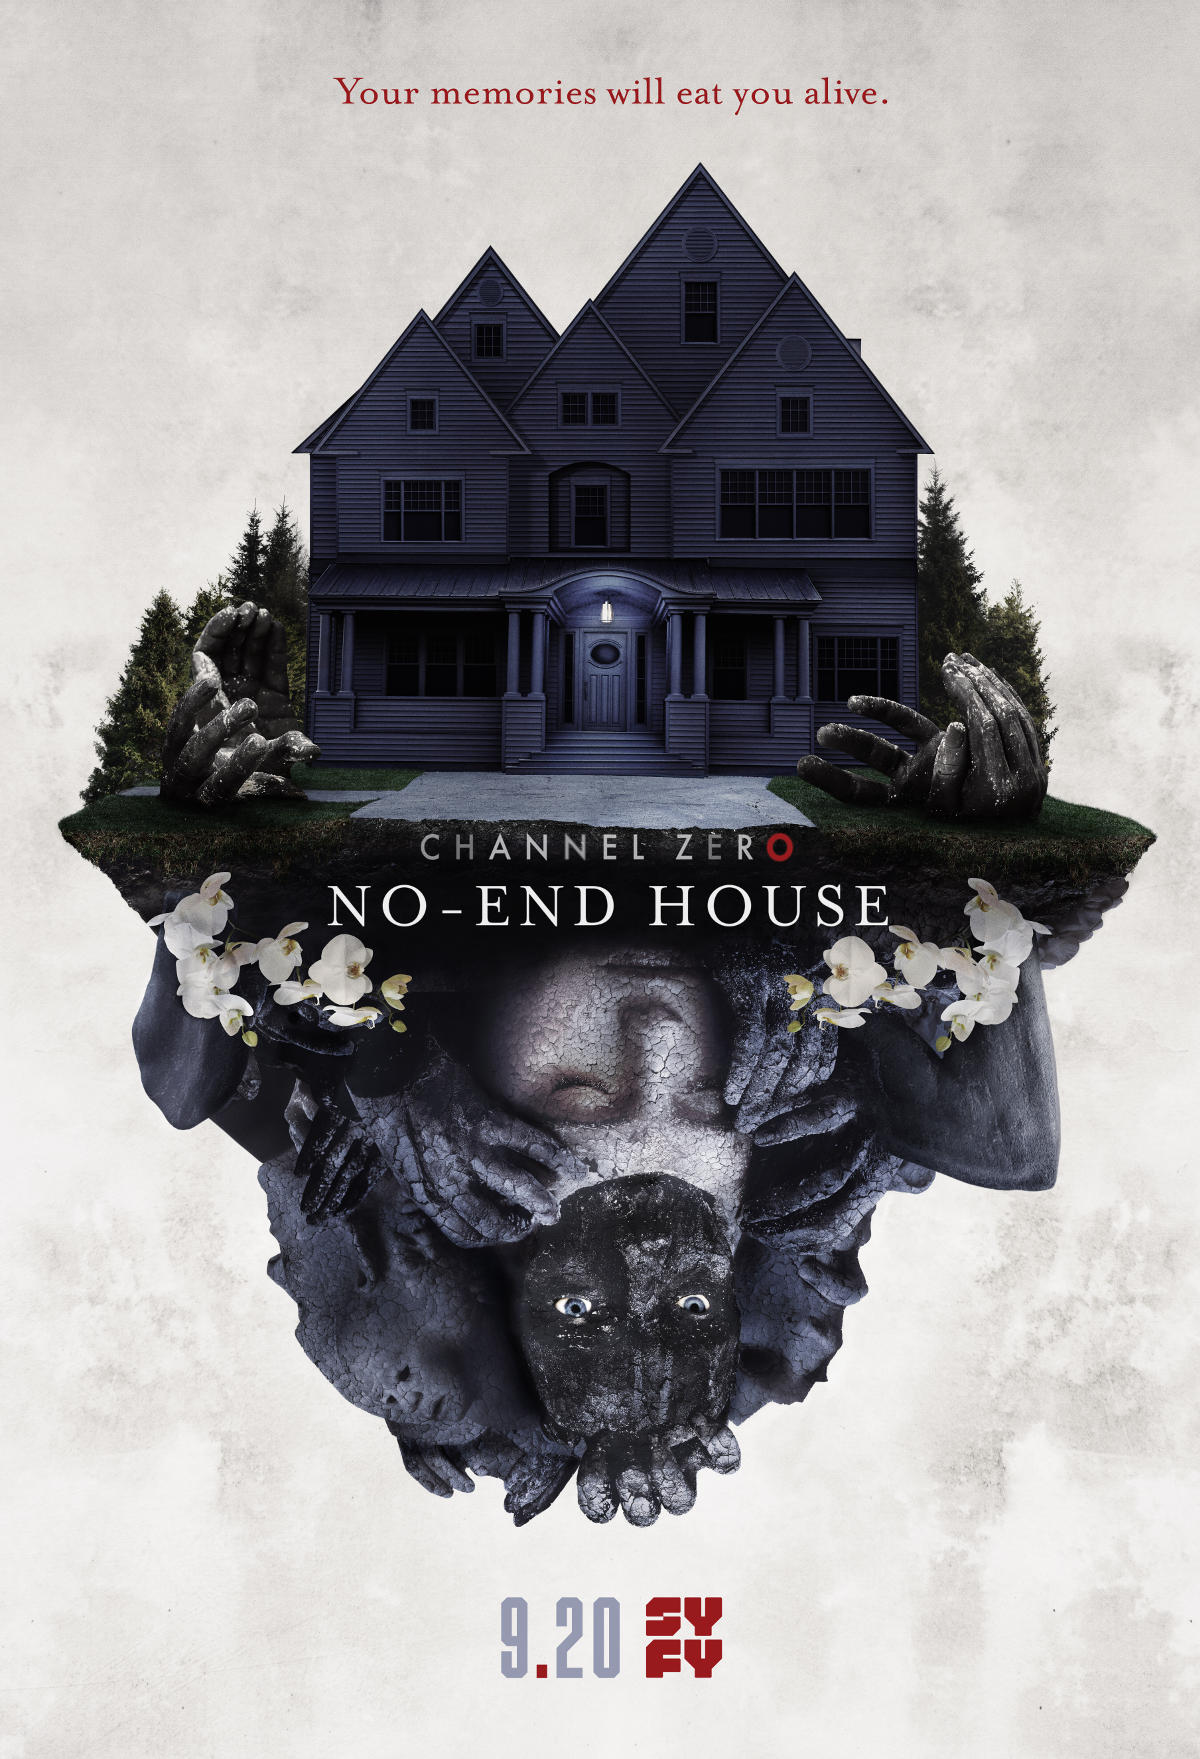 https://dailydead.com/wp-content/uploads/2017/09/Channel-Zero-No-End-House-poster-09.jpg